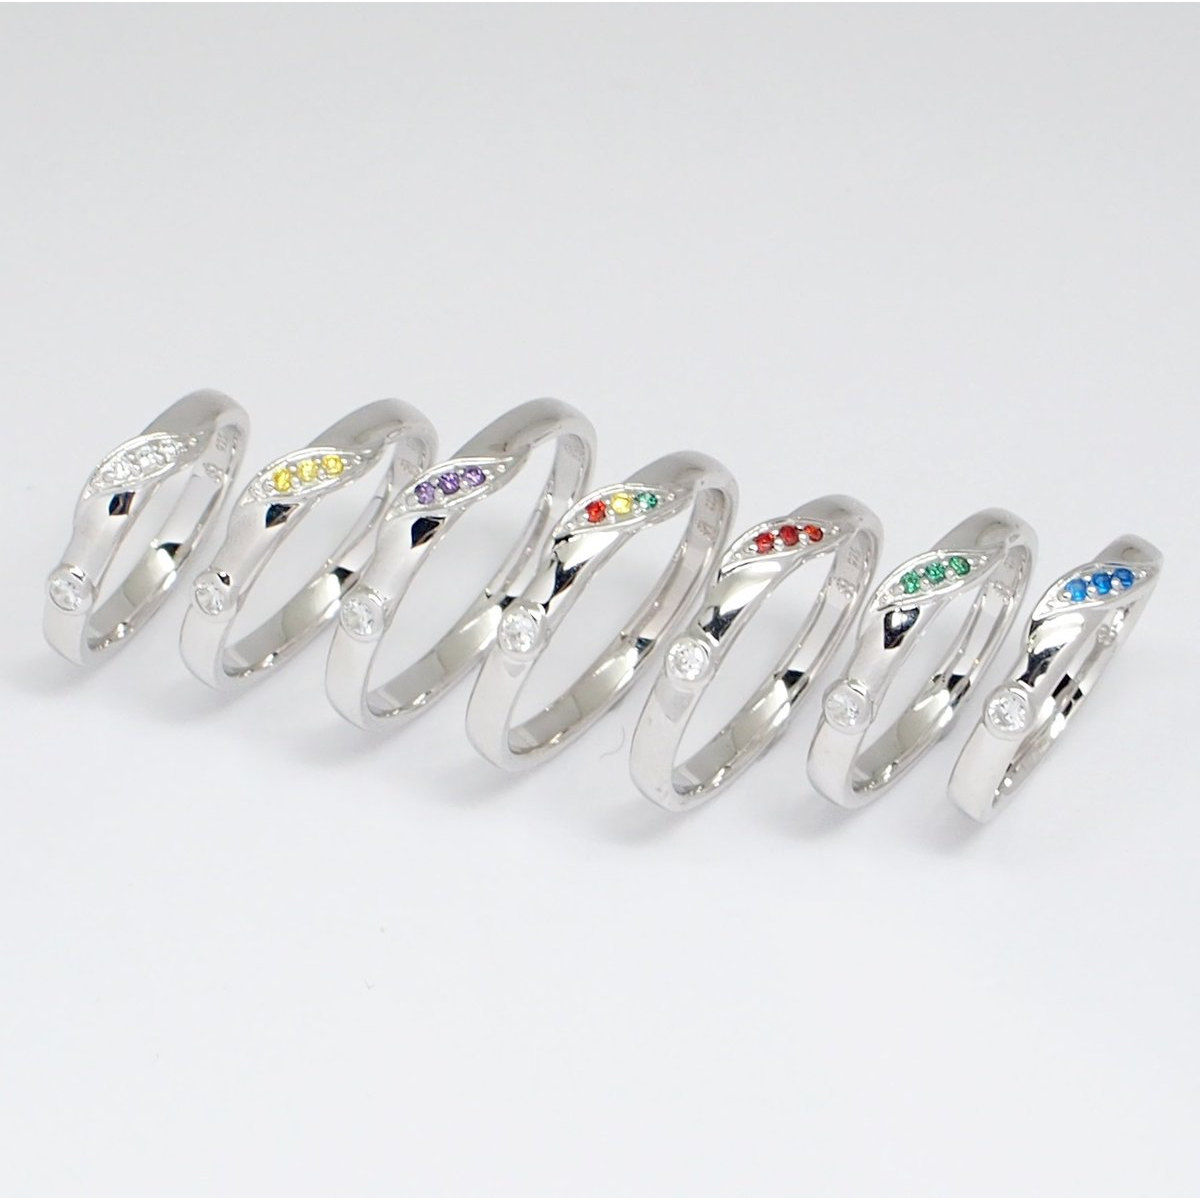 Ring—Kamen Rider OOO/MATERIAL CROWN Collaboration